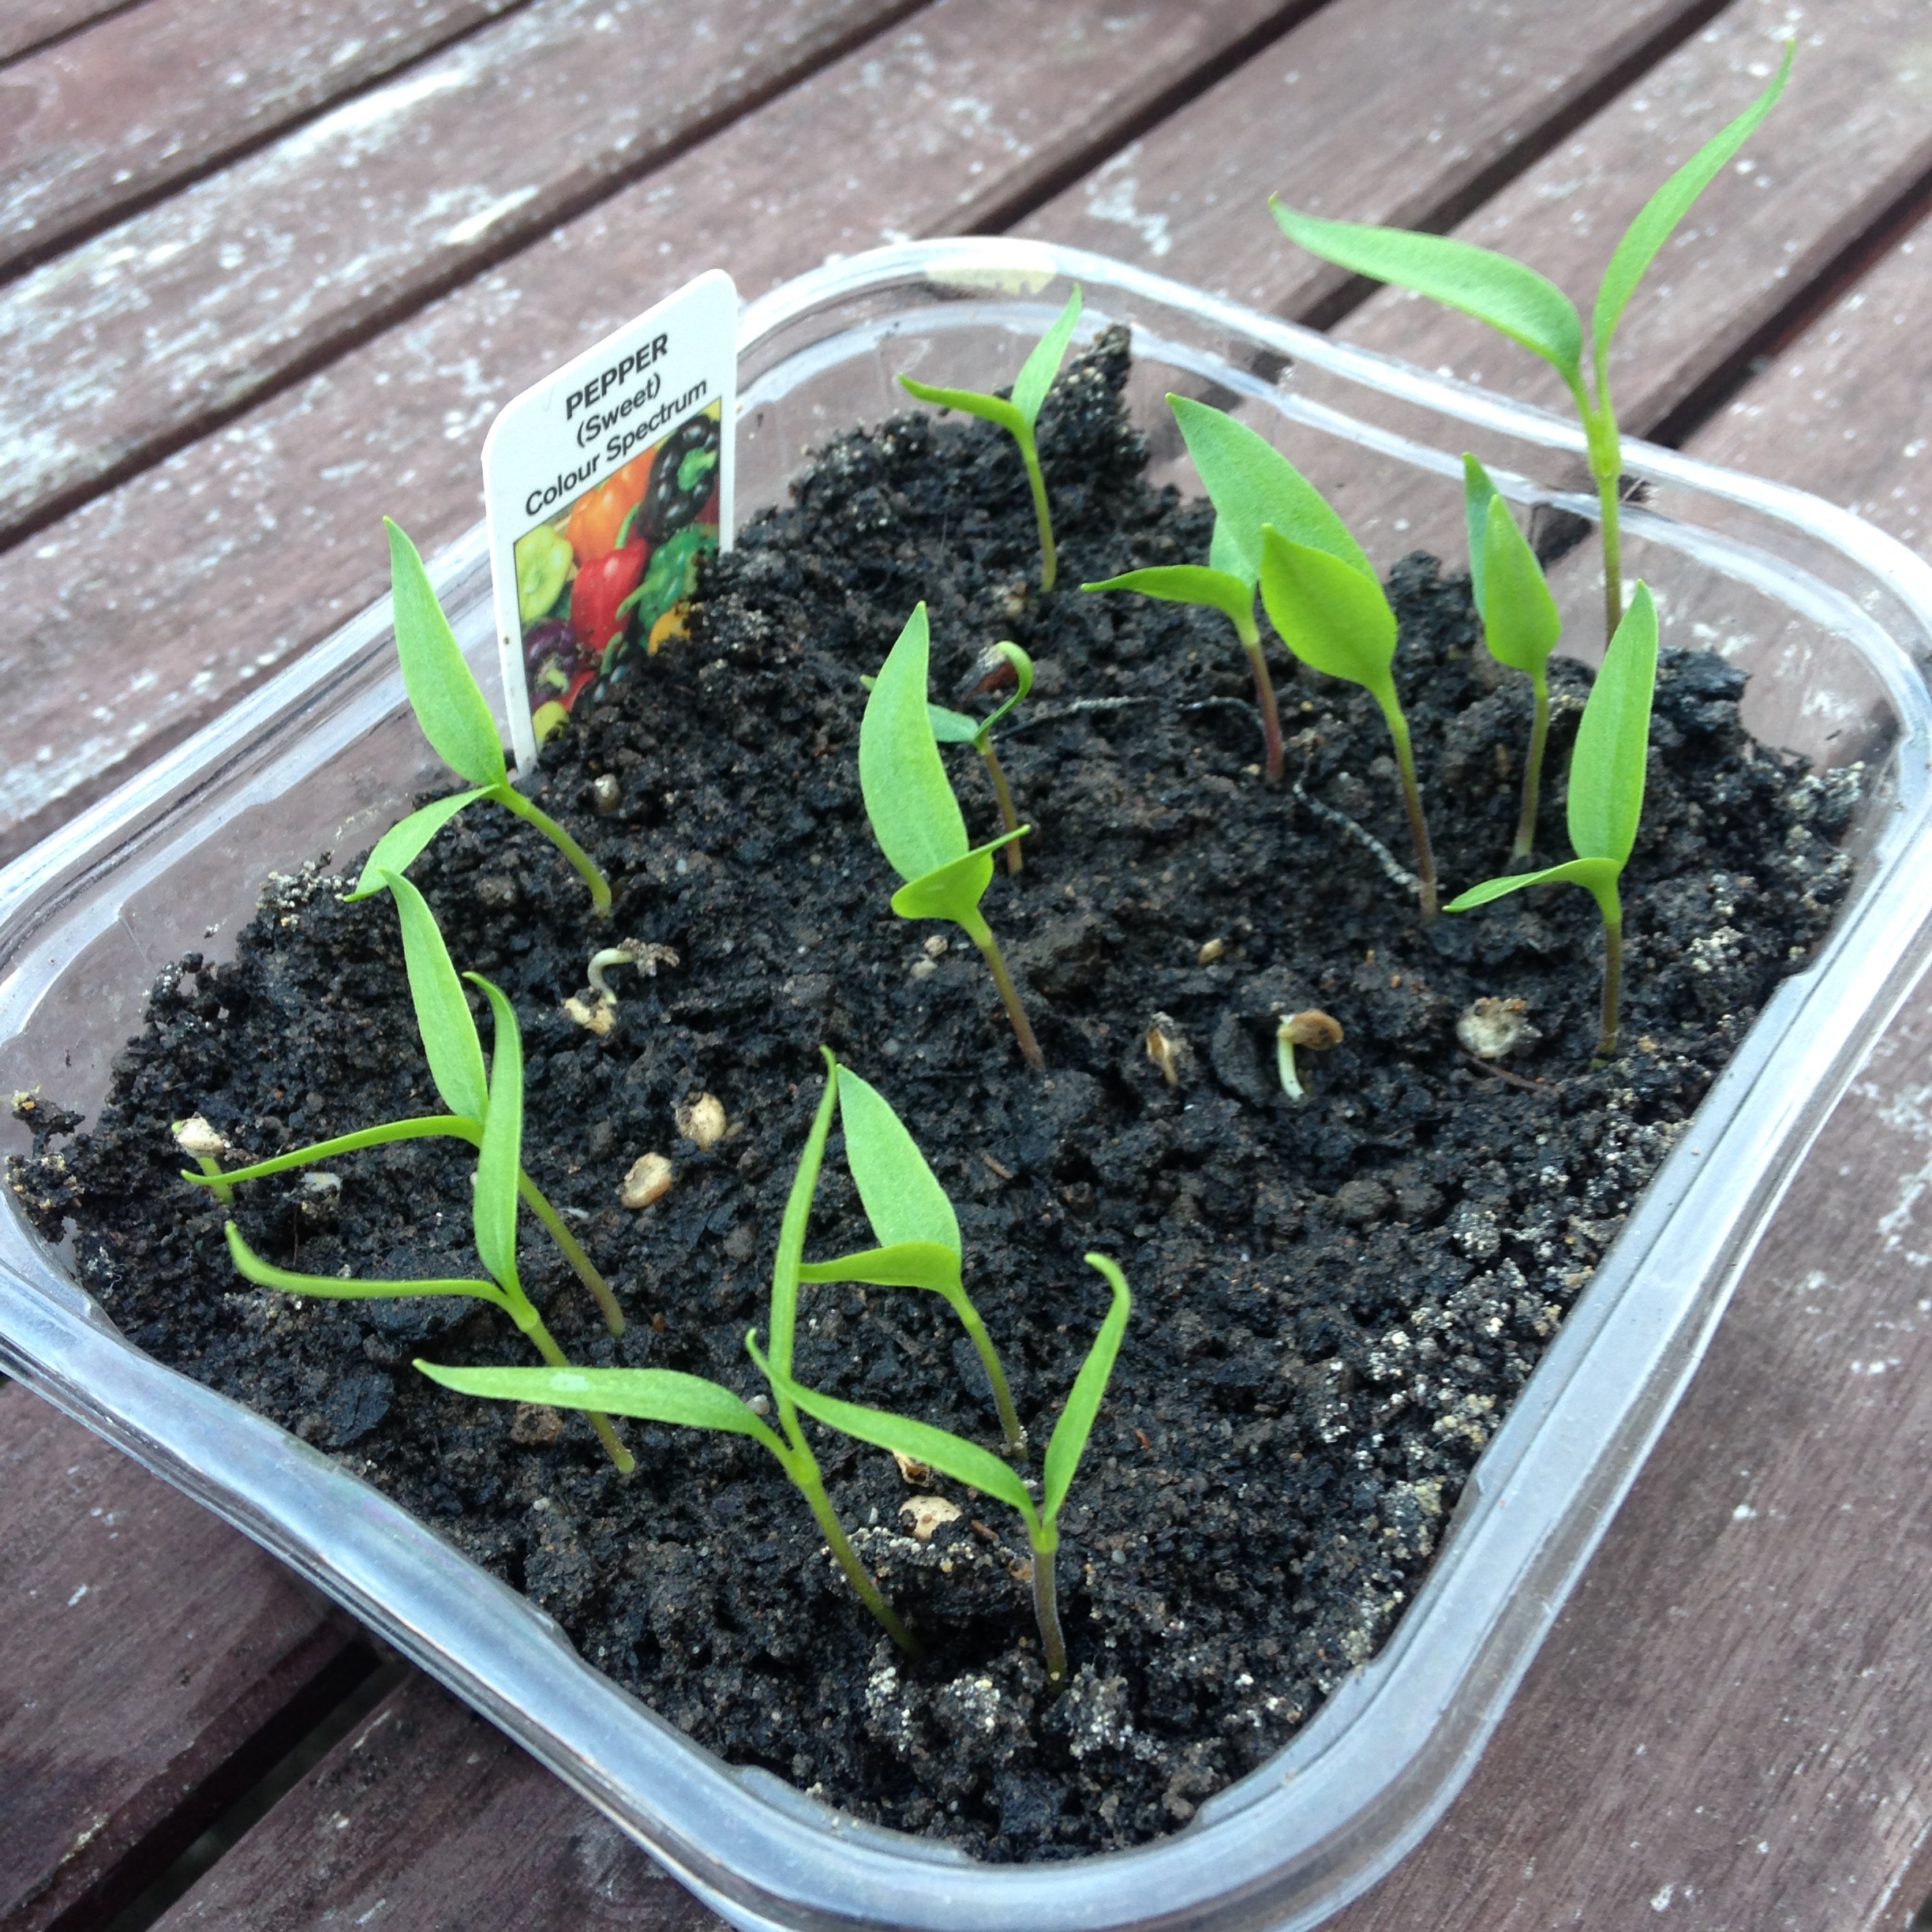 Pepper seeds growing